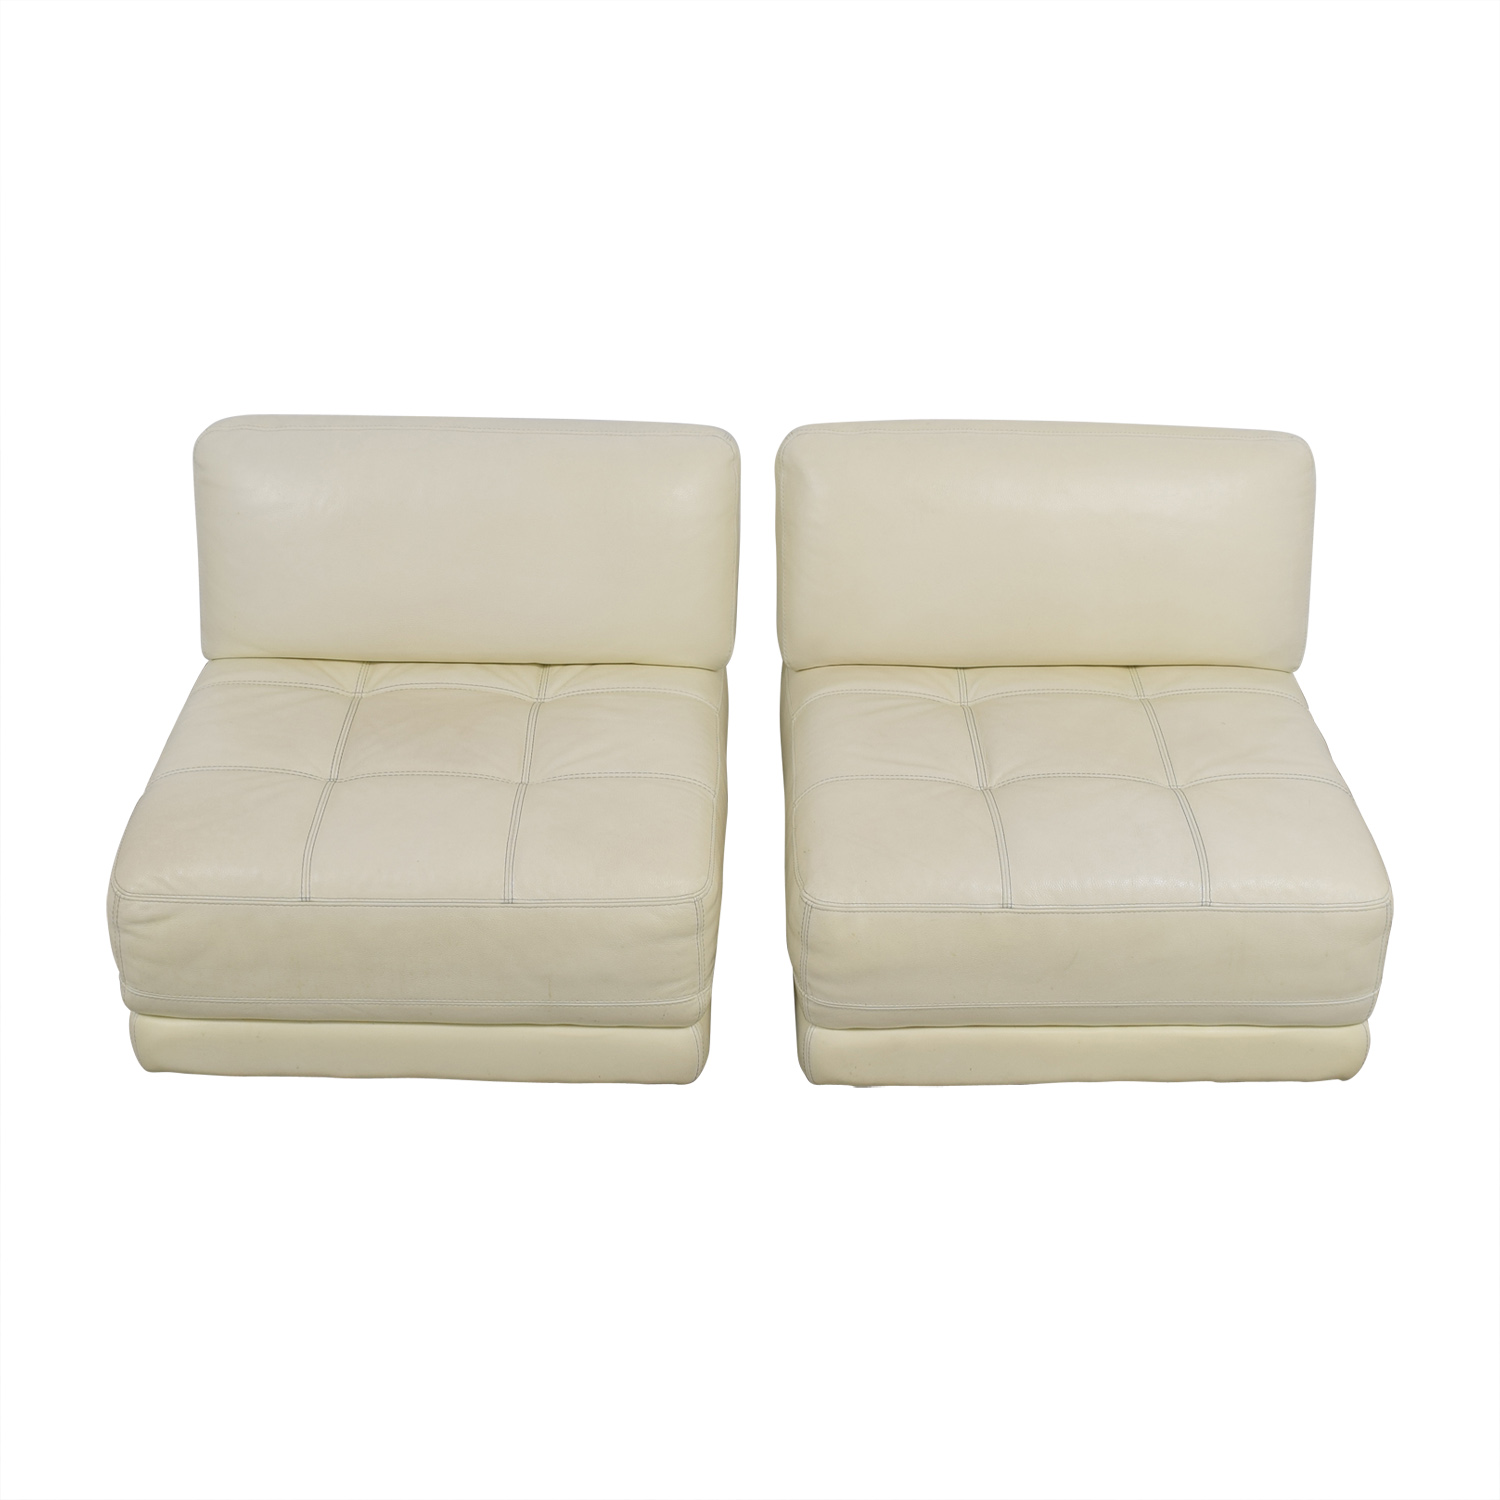 Macy's Macy's Modulara White Leather Chairs for sale